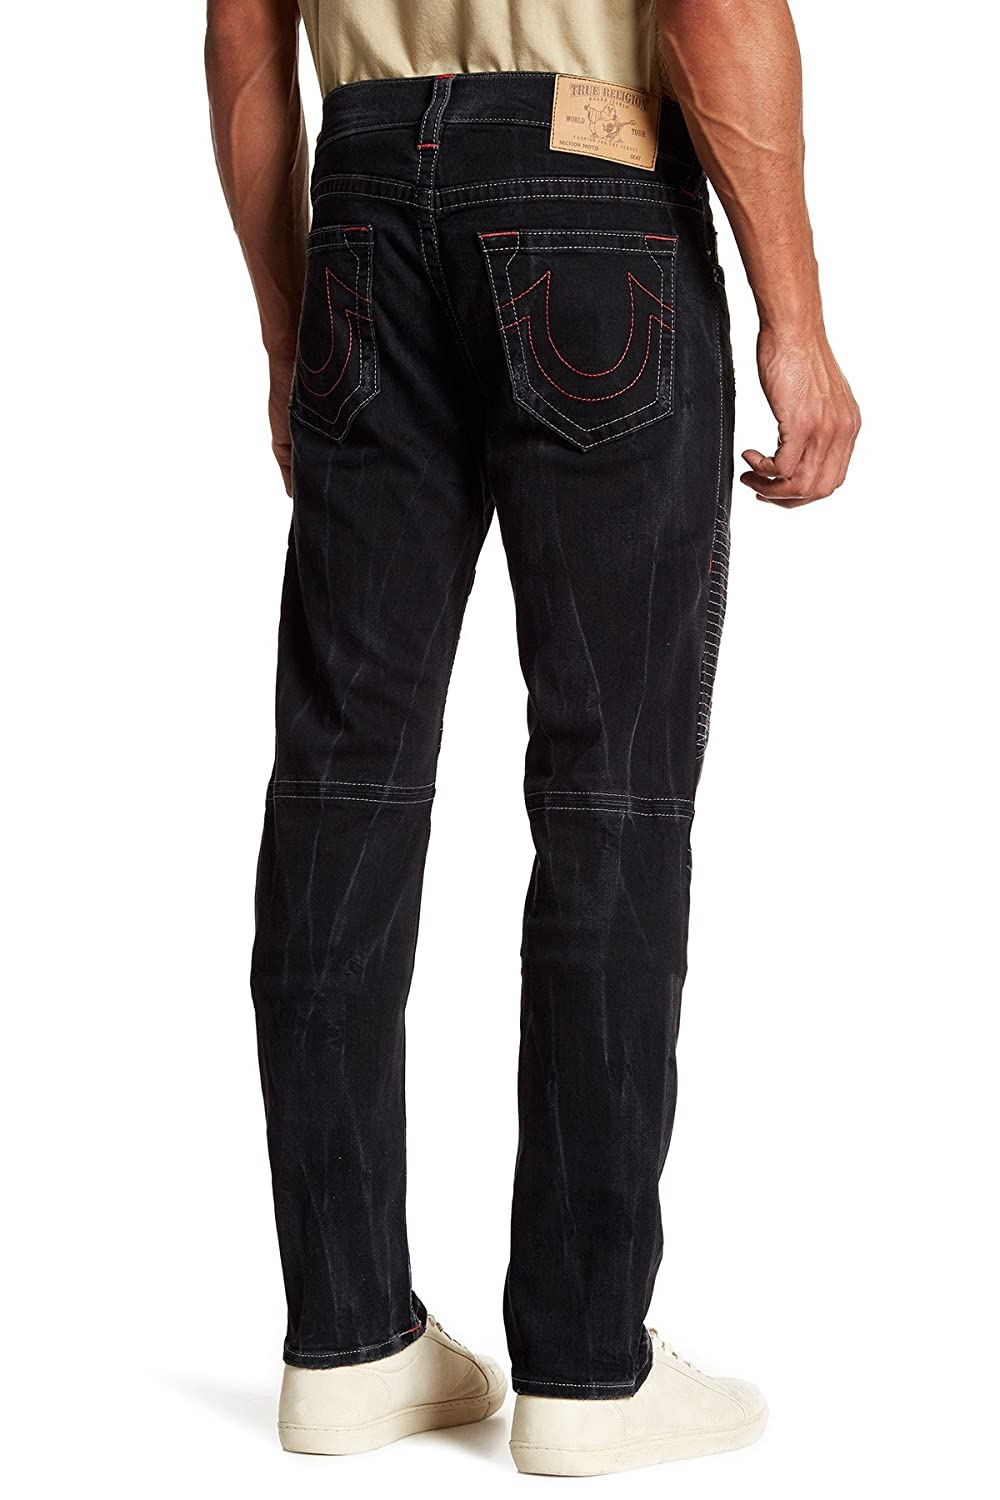 8a01a74d Amazon.com: True Religion Men's Skinny Moto Grey SN Red Jeans-38: Clothing